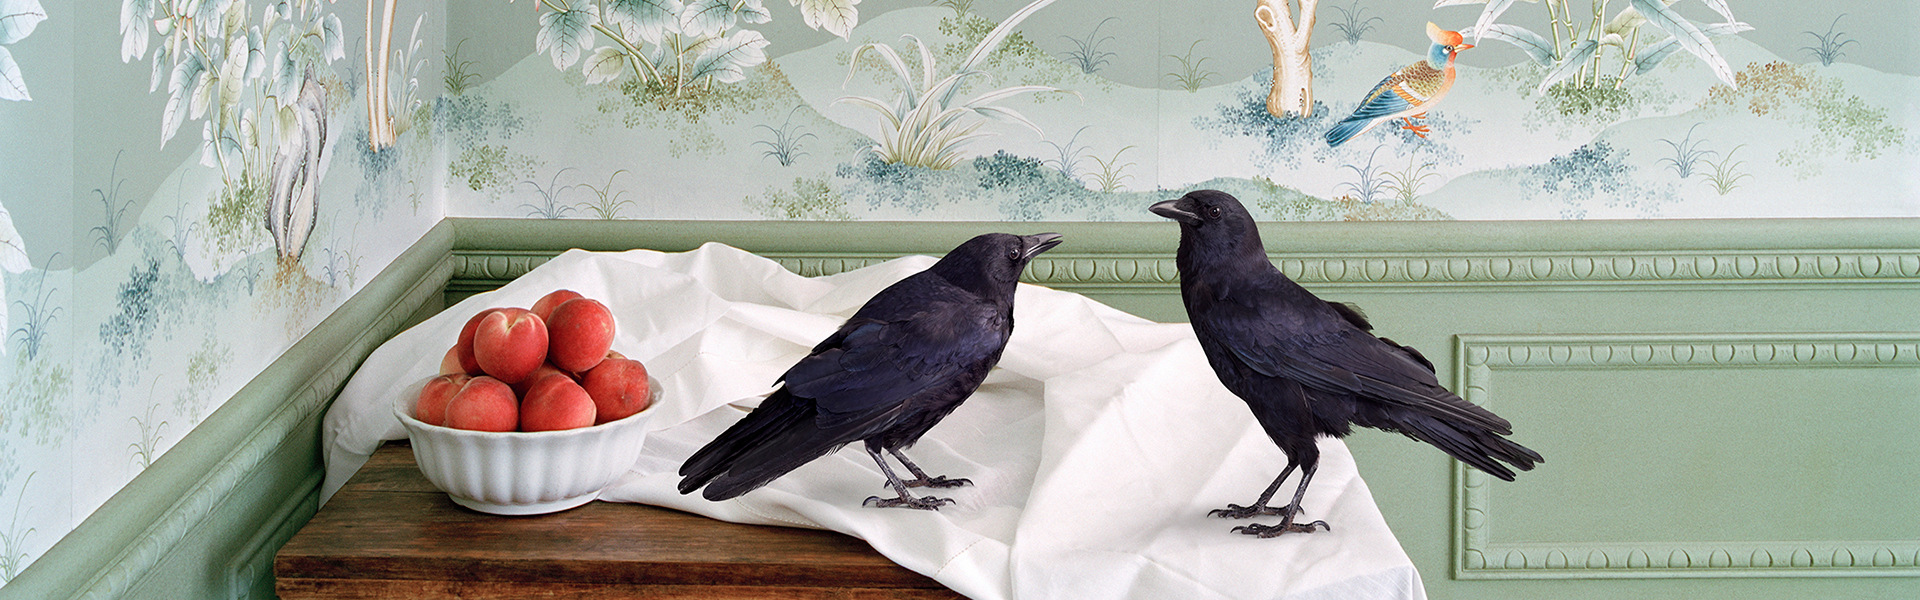 banner_BANNERThe-Crows-At-Your-Table-size-7x7.20210607205551.jpg